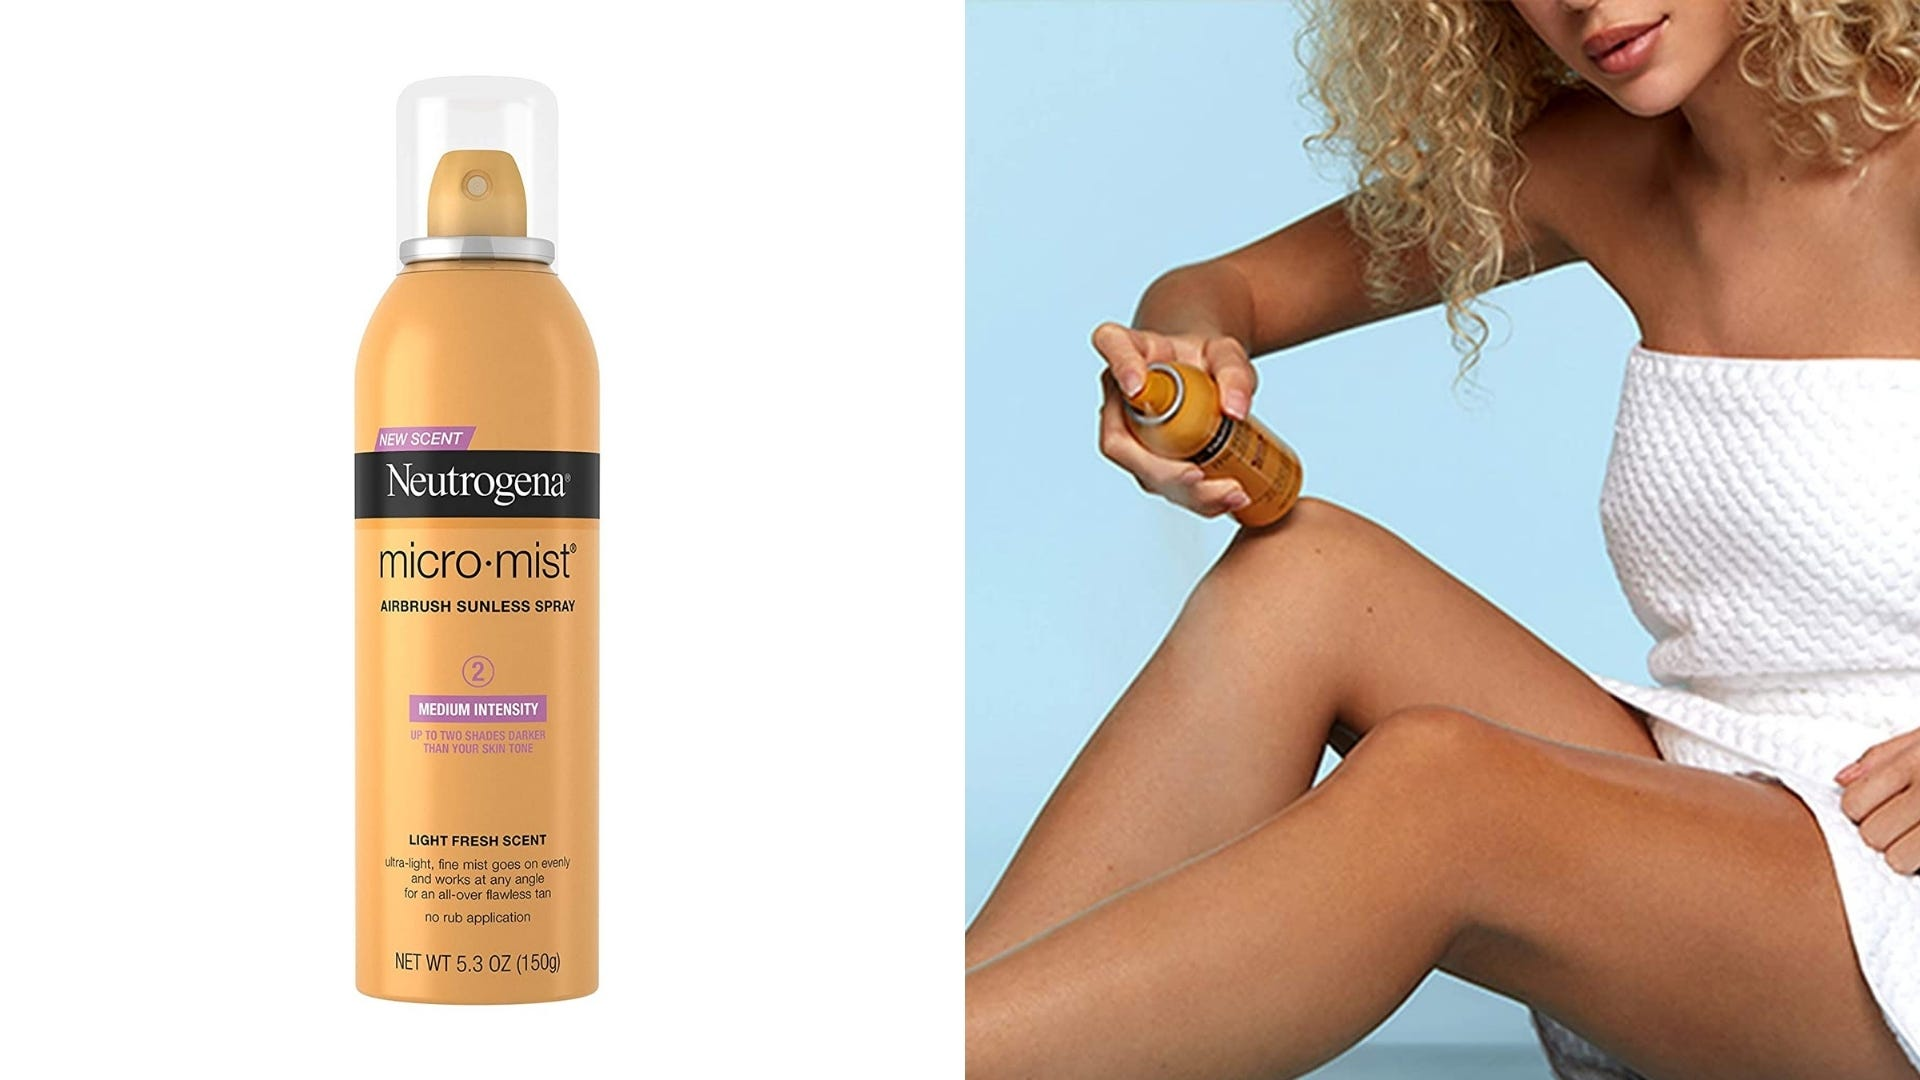 A yellow bottle of self tanning mist and a woman uses the mist on her legs.